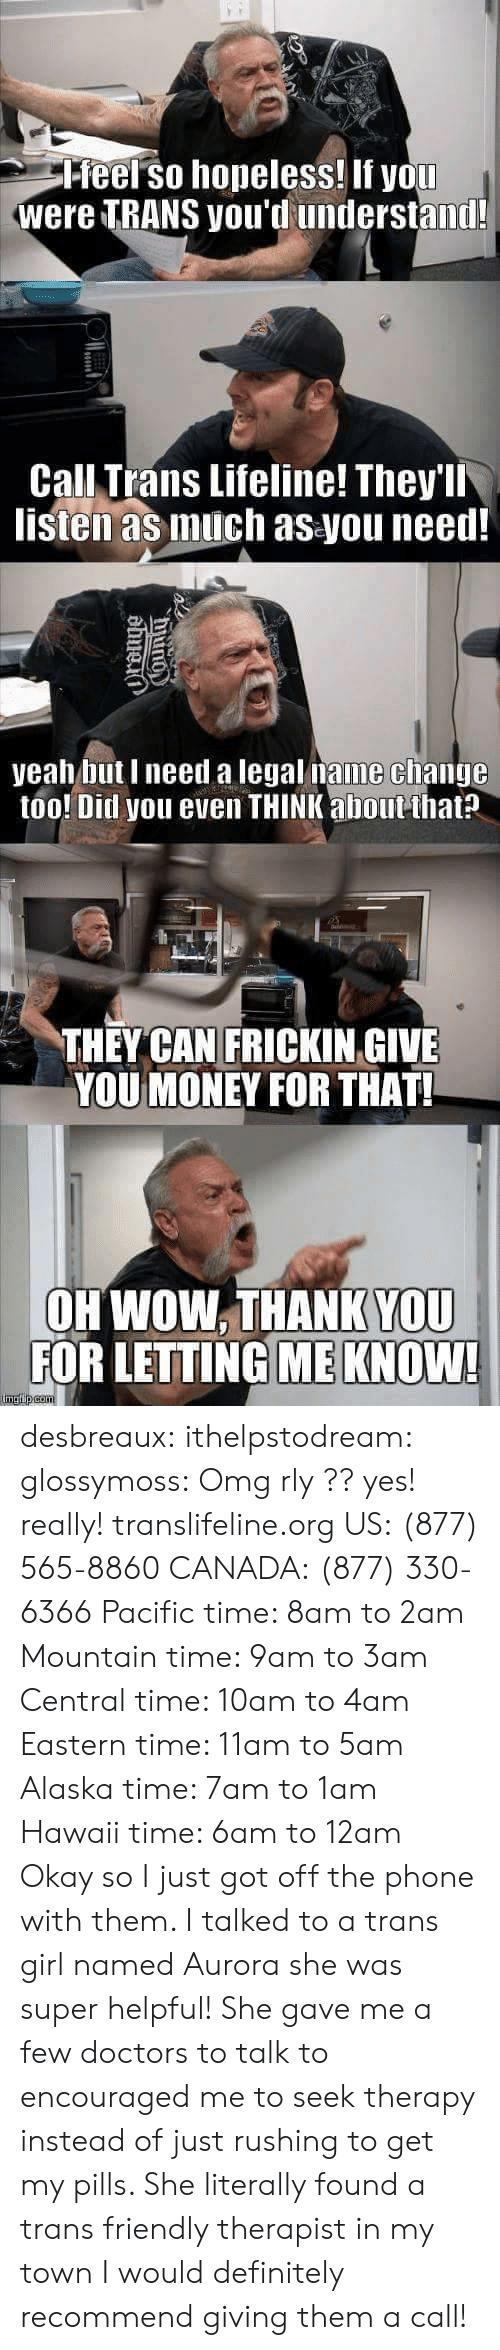 Definitely, Money, and Omg: Pfeel so hopeless! If you  were TRANS you'd understand!  Call Trans Lifeline! They'll  listen as much as you need!  yeah but I need a legal name clhange  too! Ditl you even THINK about that?  THEY CAN FRICKIN GIVE  YOU MONEY FOR THAT!  OH WOW. THANK YOU  FOR LETTING ME KNOW! desbreaux: ithelpstodream:  glossymoss:  Omg rly ??  yes! really! translifeline.org US:(877) 565-8860 CANADA:(877) 330-6366 Pacific time: 8am to 2am Mountain time: 9am to 3am Central time: 10am to 4am Eastern time: 11am to 5am Alaska time: 7am to 1am Hawaii time: 6am to 12am   Okay so I just got off the phone with them. I talked to a trans girl named Aurora  she was super helpful! She gave me a few doctors to talk to  encouraged me to seek therapy instead of just rushing to get my pills. She literally found a trans friendly therapist in my town  I would definitely recommend giving them a call!